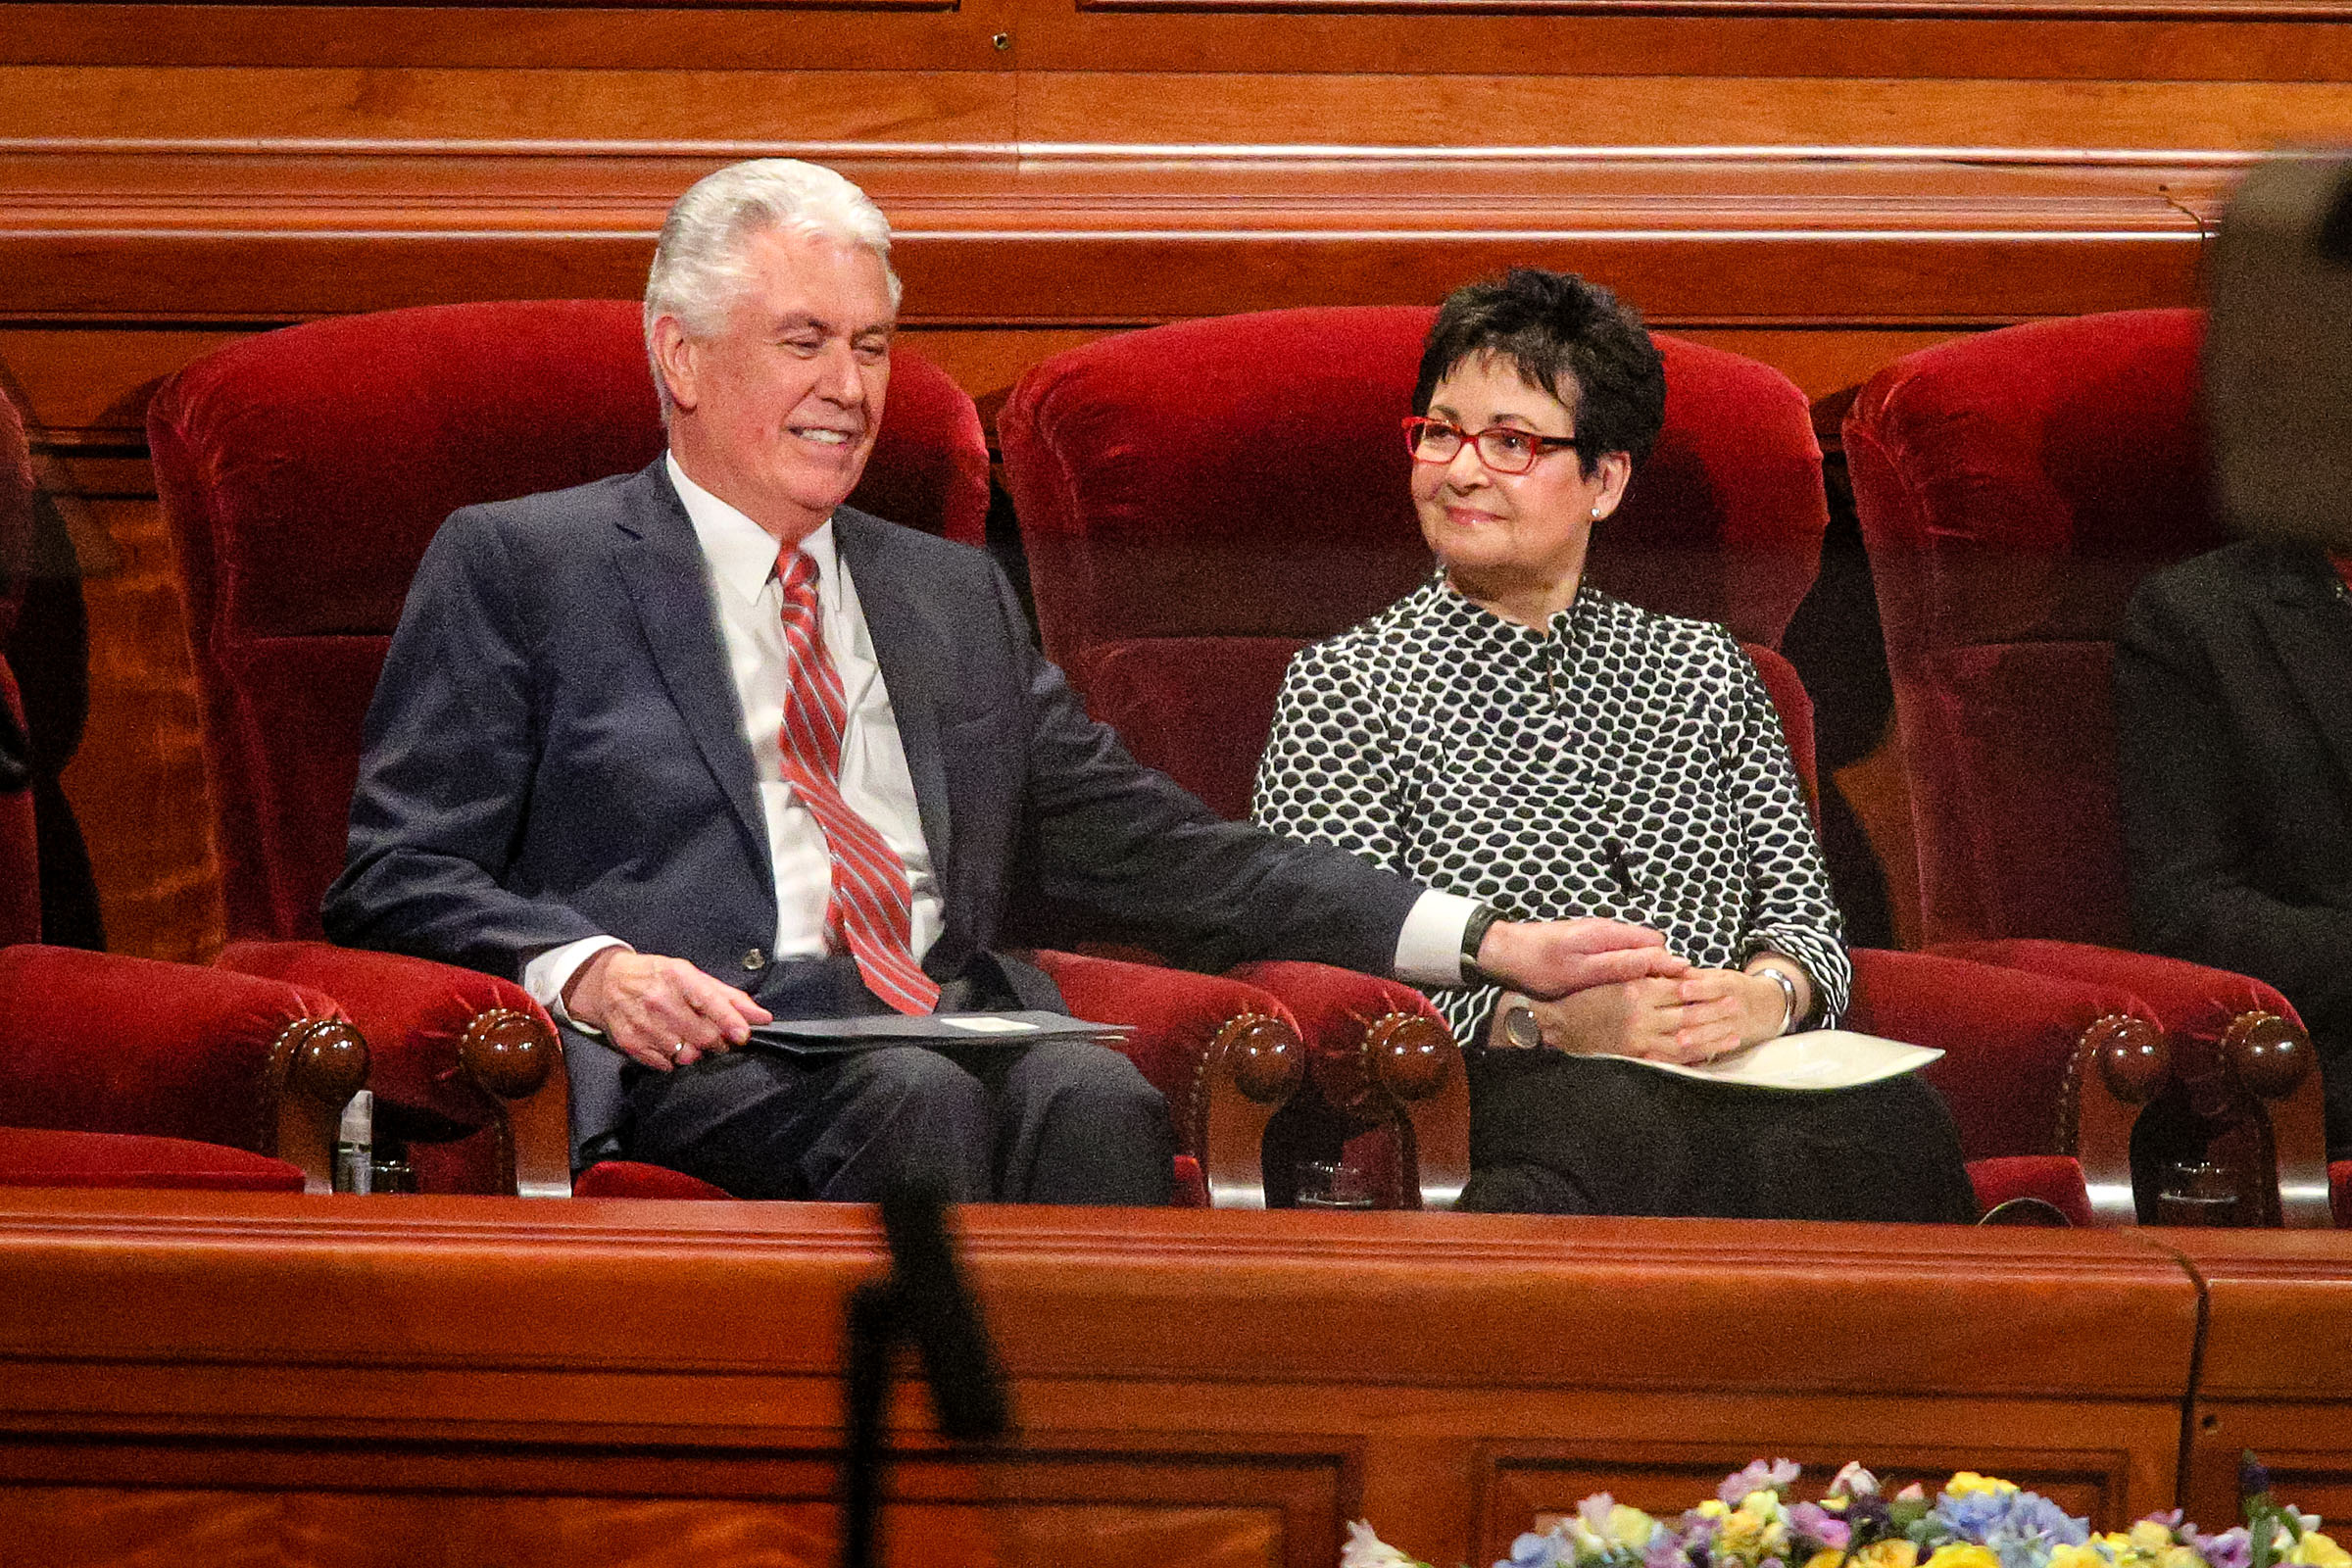 Elder Dieter F. Uchtdorf holds hands with his wife, Sister Harriet Reich Uchtdorf, prior to the World Wide Devotional for Young Adults which was hosted by Elder Dieter F. Uchtdorf at the Conference Center in Salt Lake Sunday, Jan. 14, 2018.